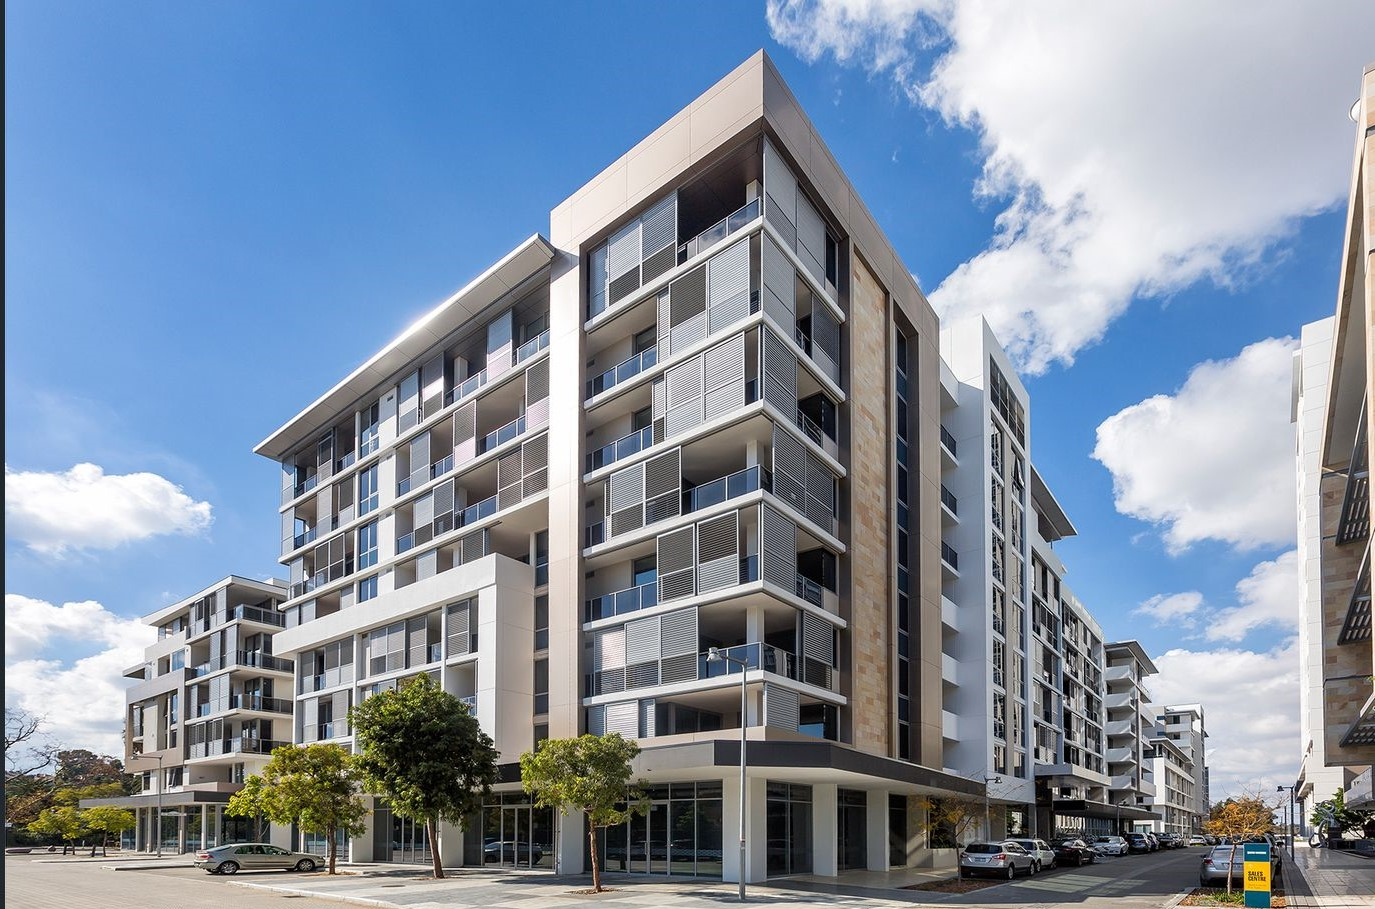 Exterior at Riverside Parade Apartments by Fraser, Centre, Perth